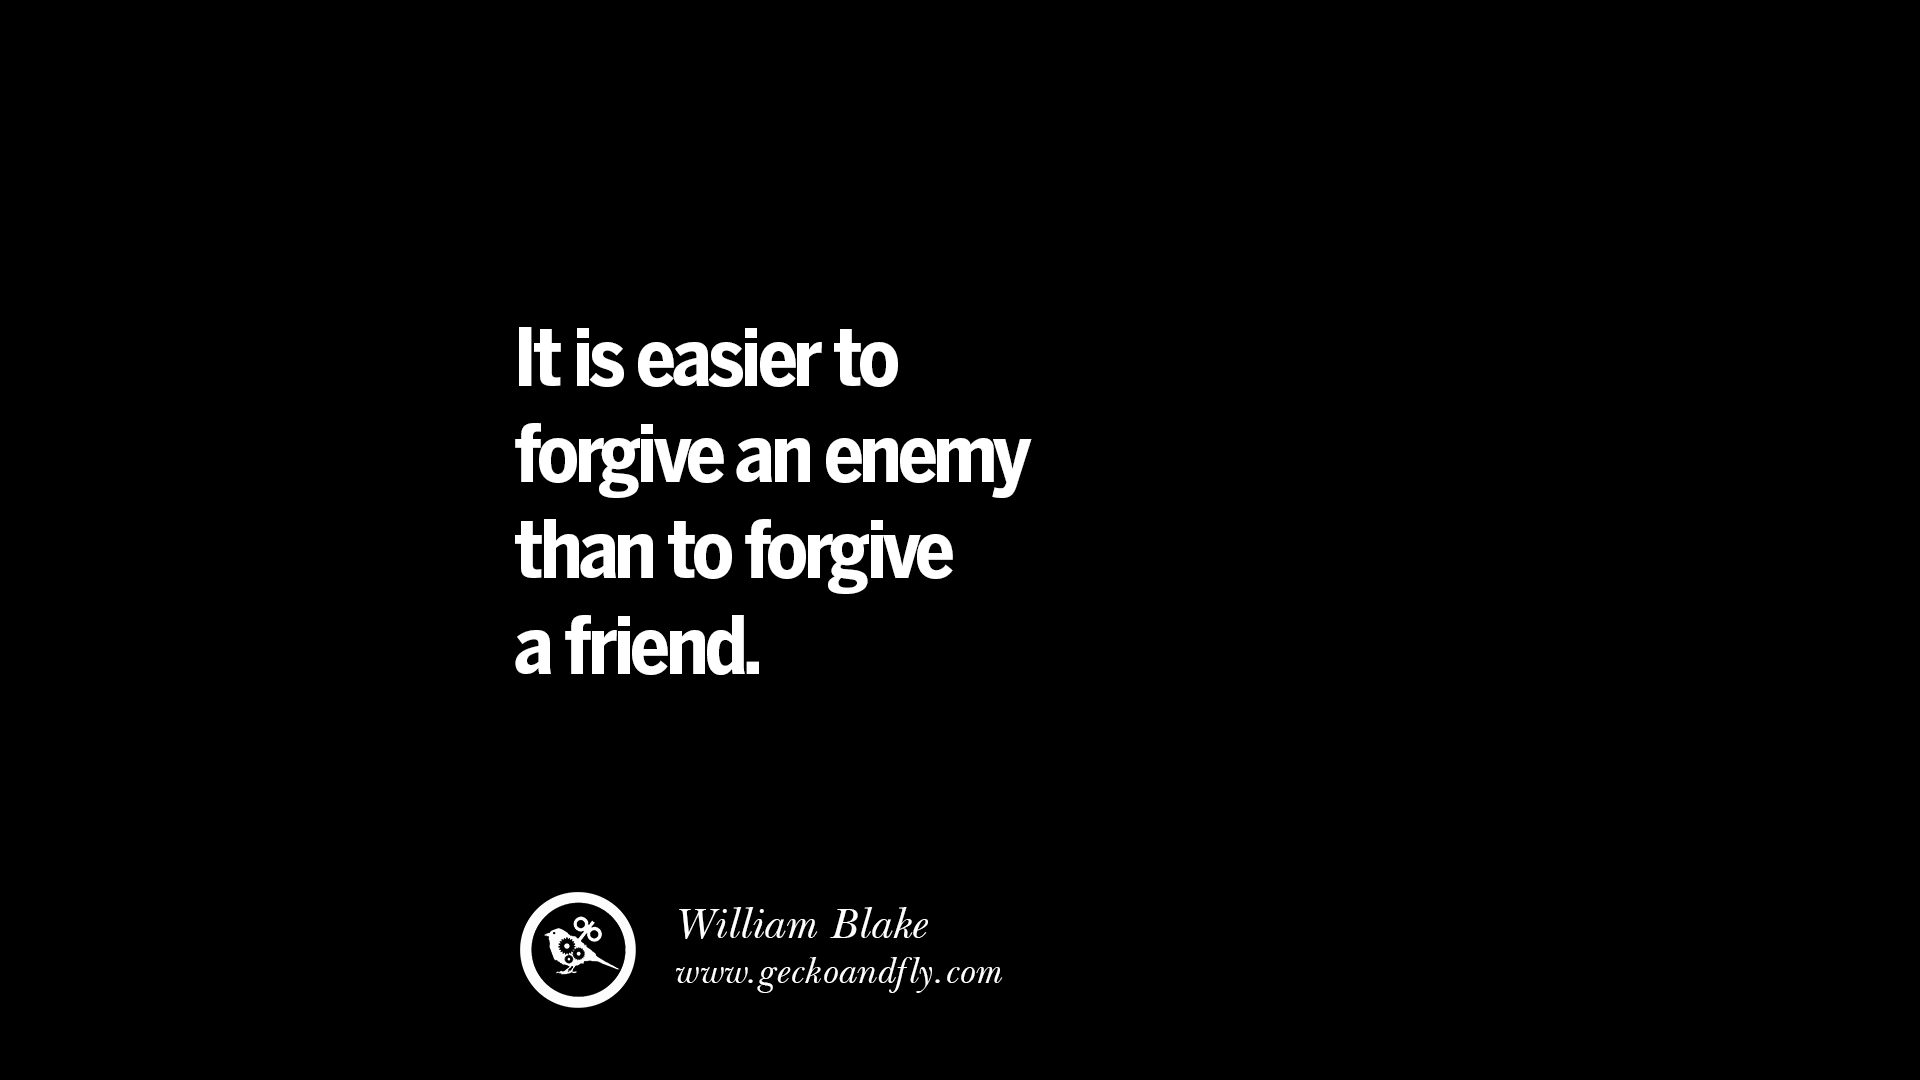 Funny Quotes About Friendship And Love 25 Quotes On Friendship Trust Love And Betrayal  Geckoandfly 2018